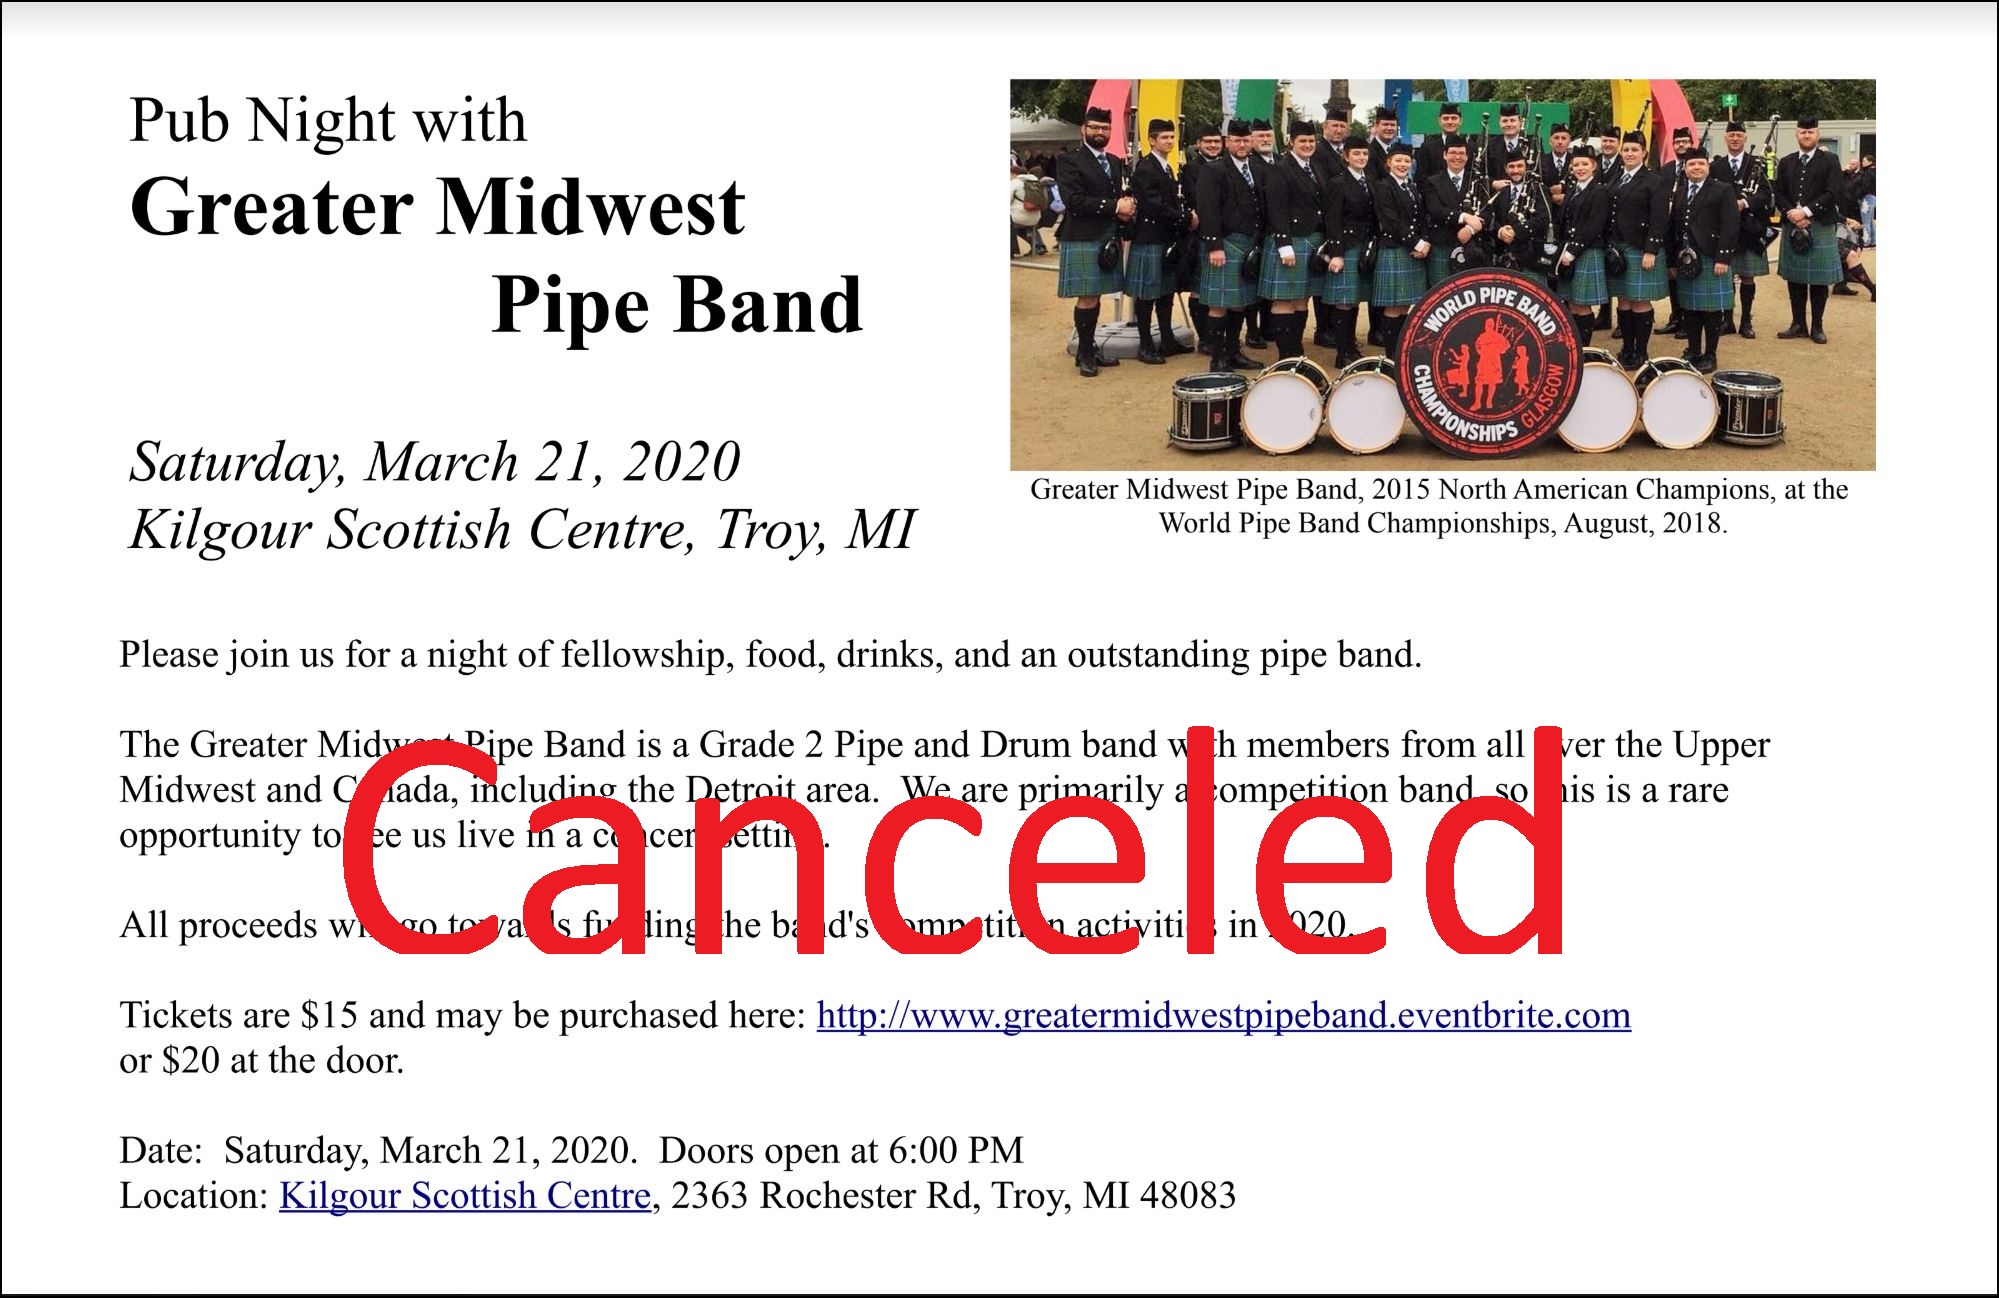 Greater-Midwest-Pipe-Band-Pub-Night-2020-03-21-Canceled